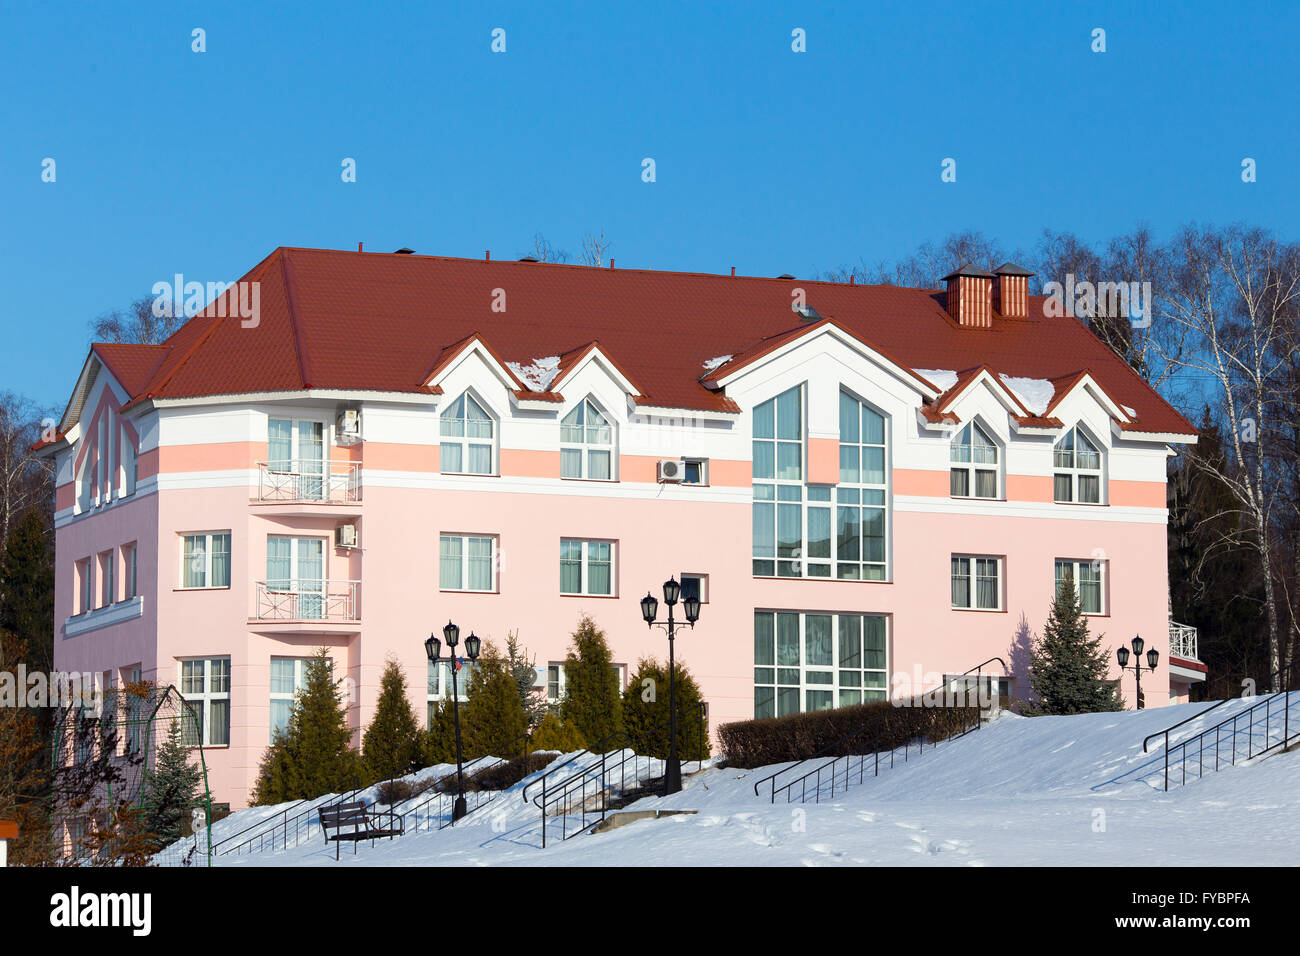 Nice Apartment Building At Winter Time Stock Photo Royalty Free Image 10290